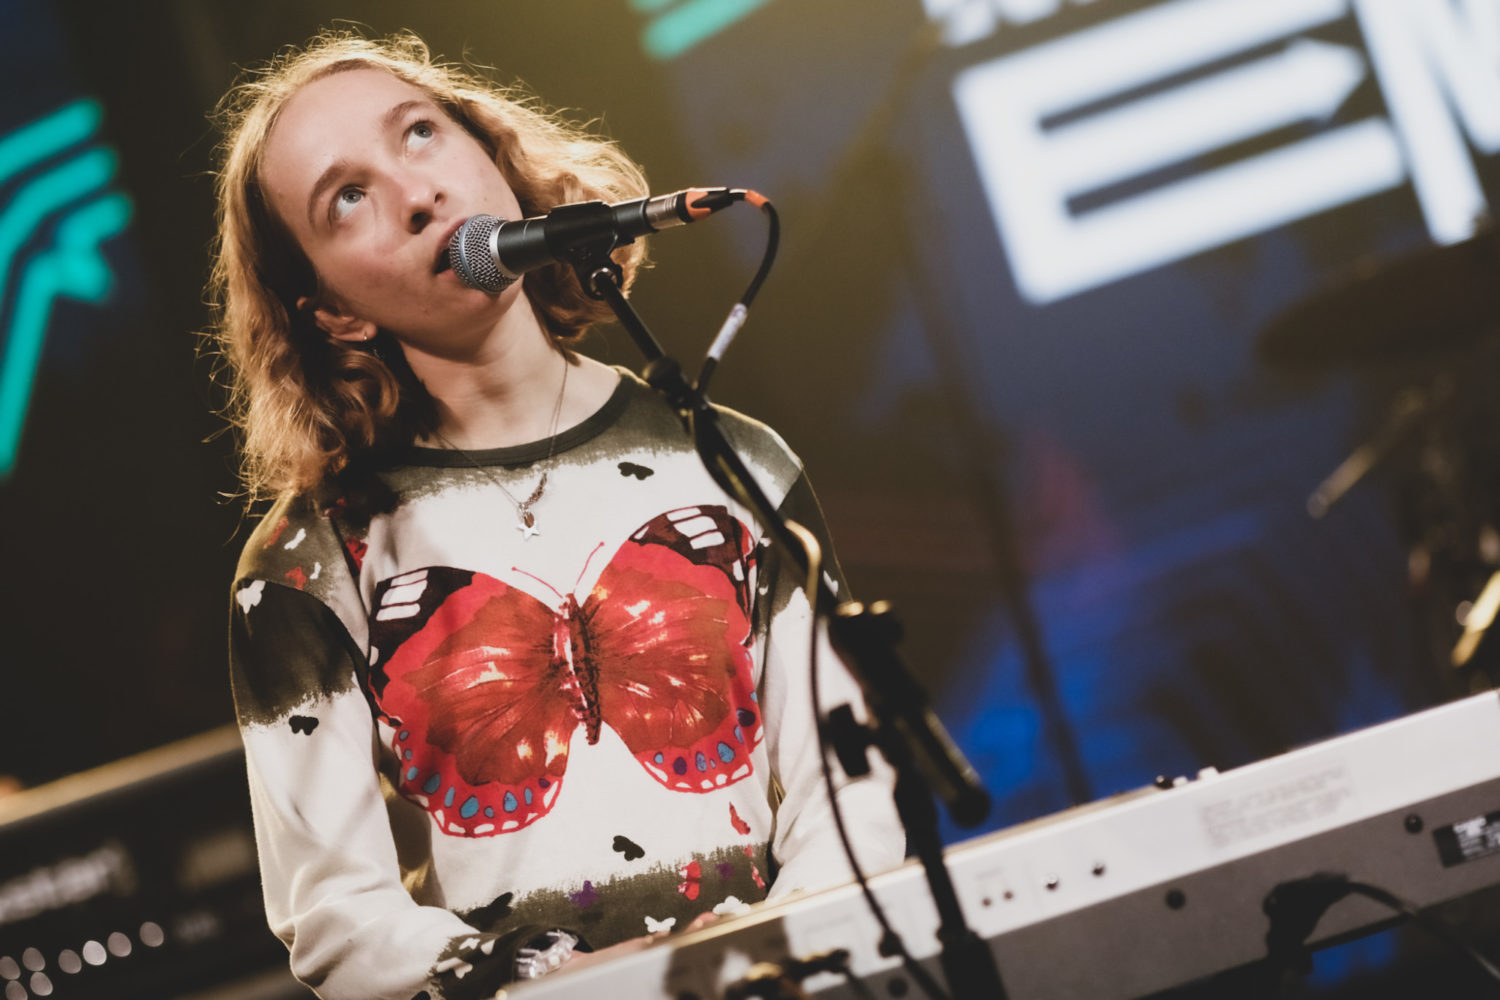 Revisit SXSW 2021 highlights from Drug Store Romeos, Matilda Mann and more